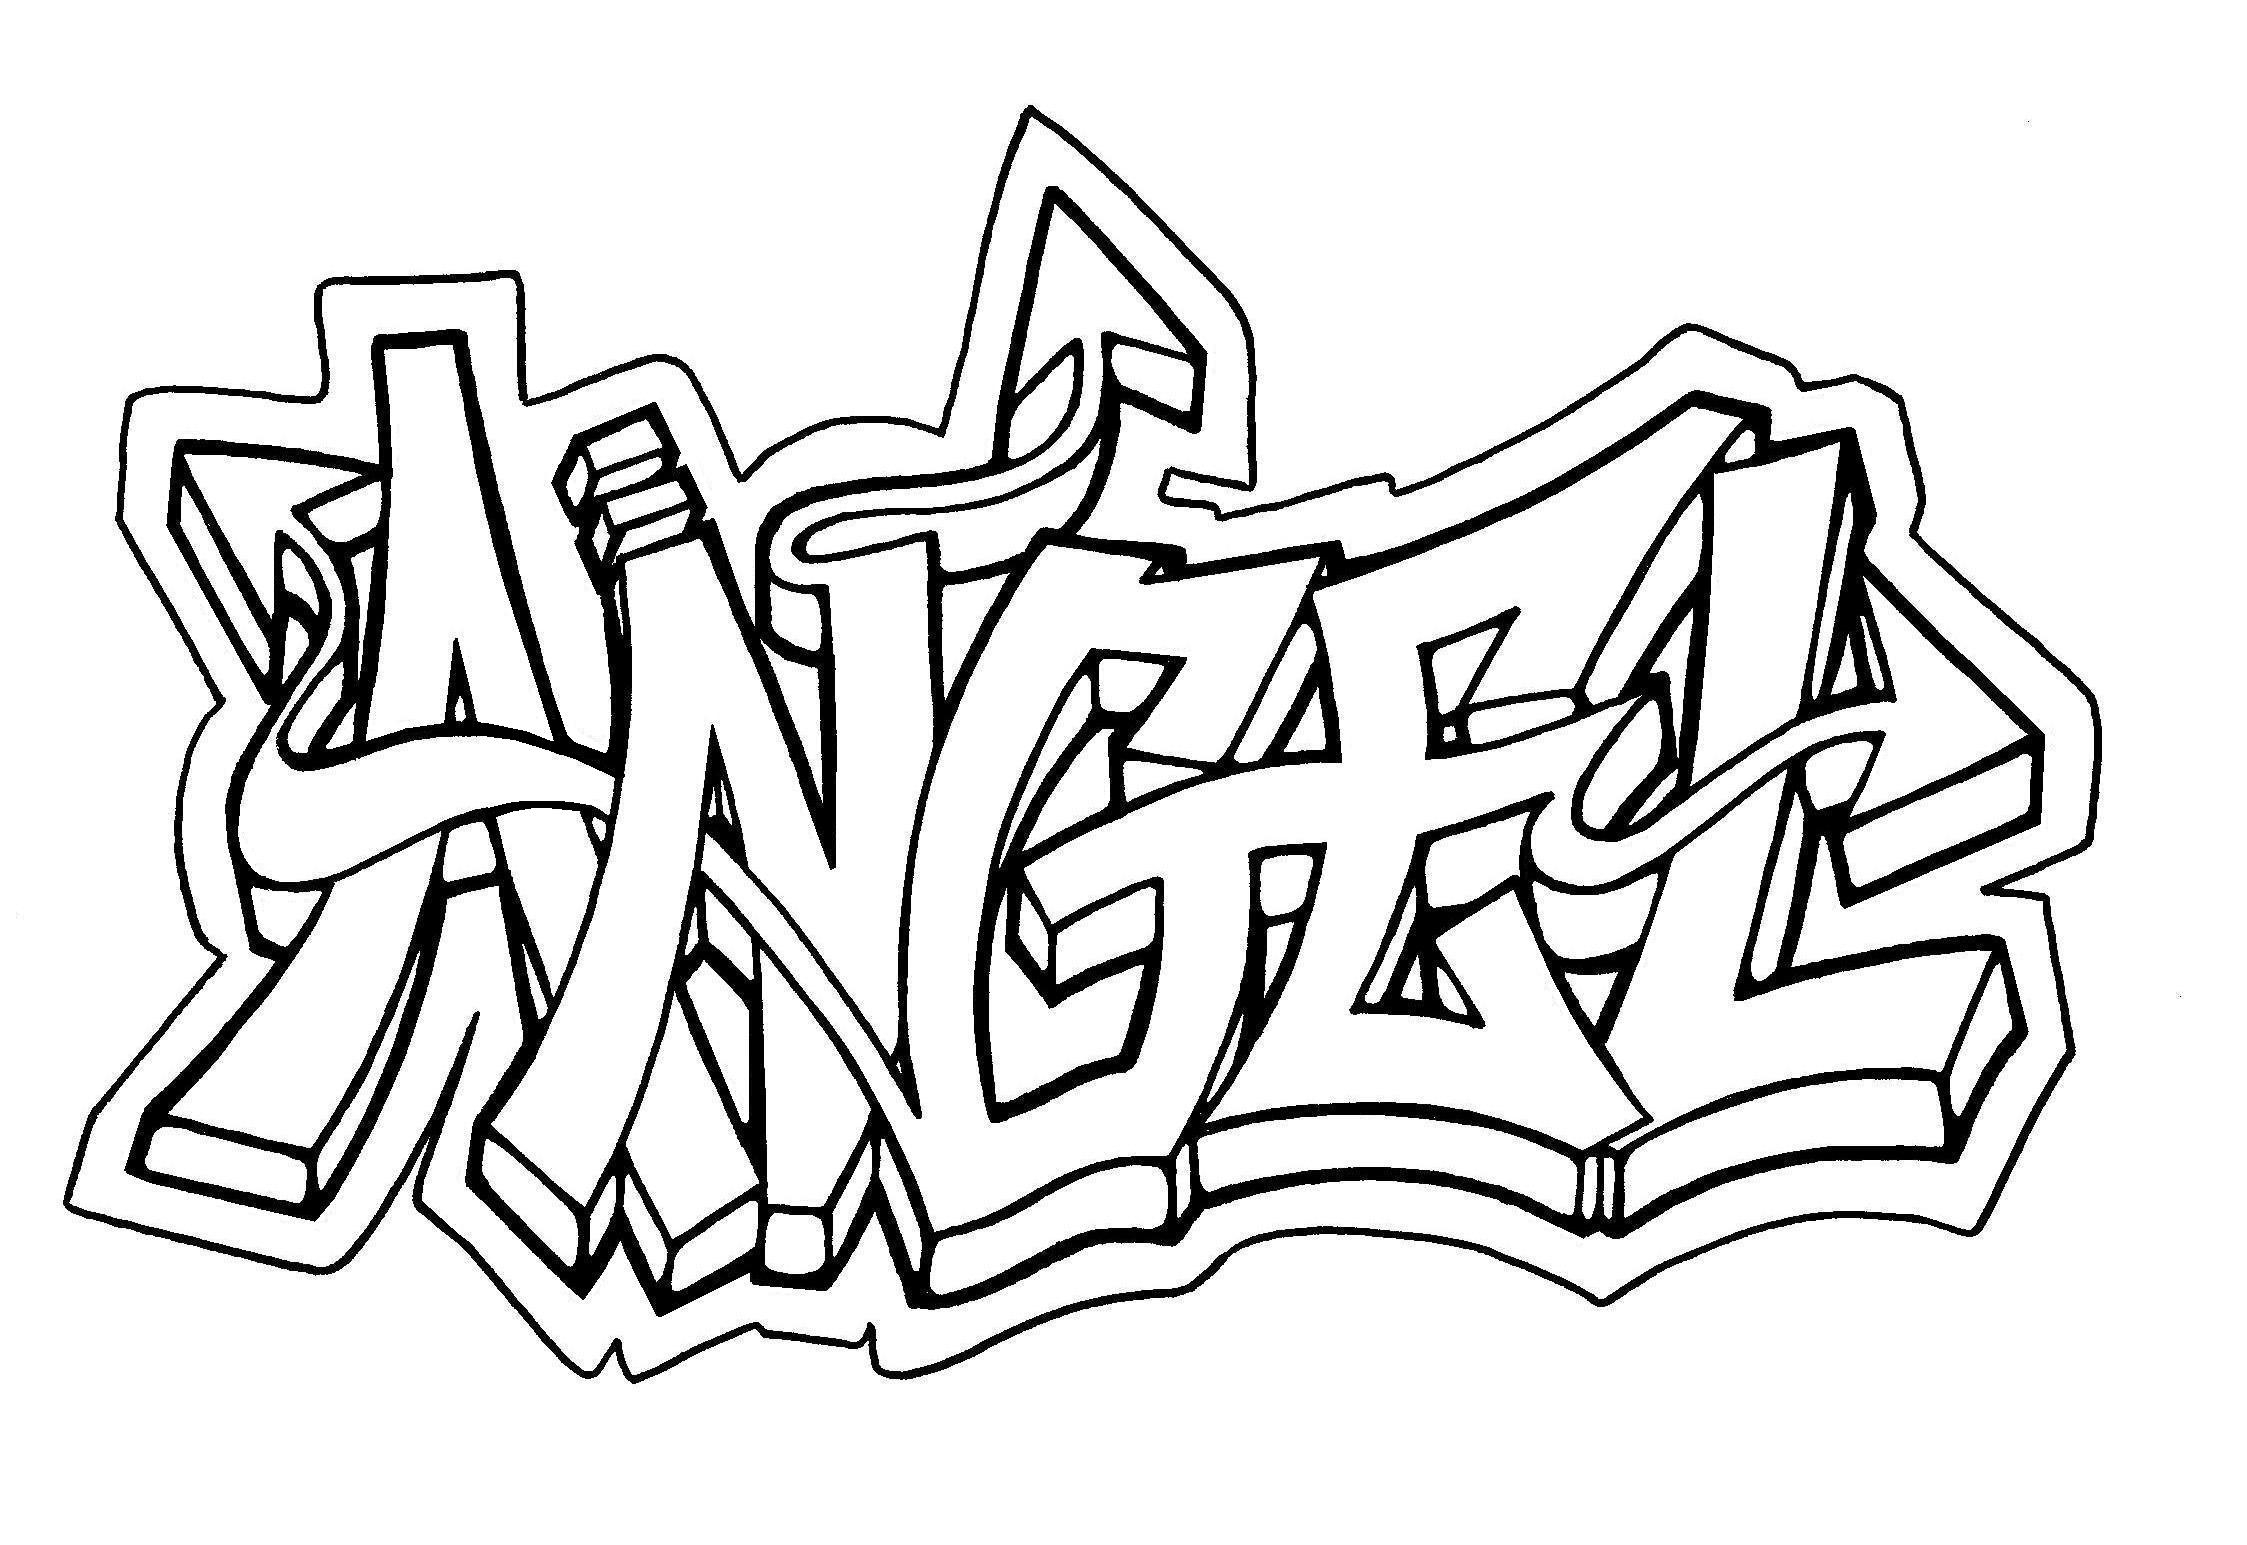 Graffiti For Beginners How To Draw Graffiti Names For Beginners – Graffiti Art